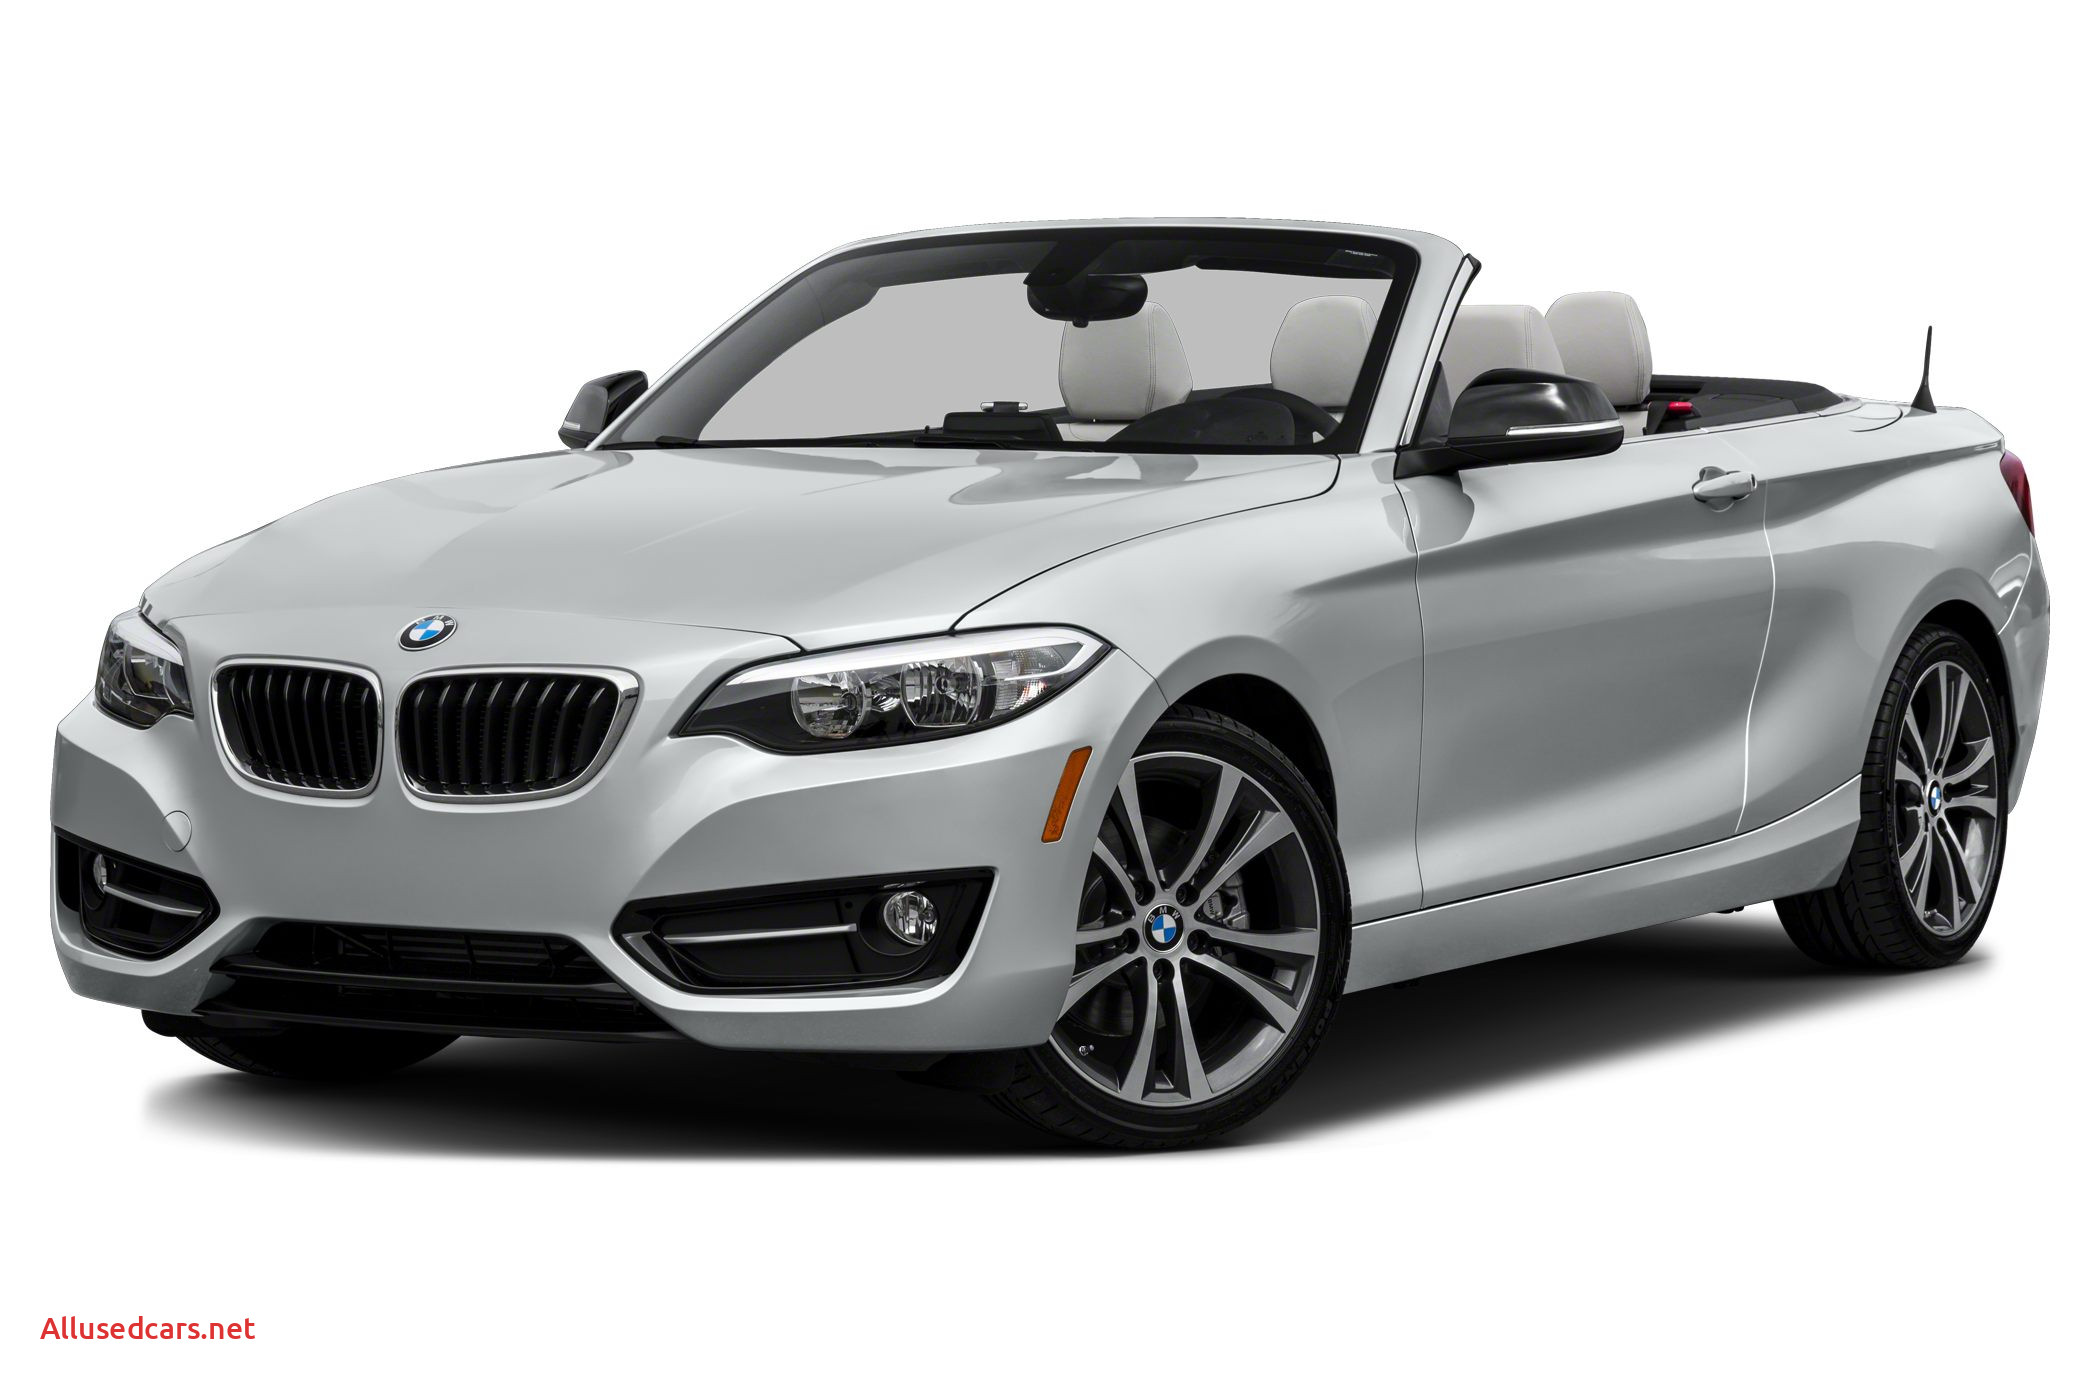 Bmw 2 Series for Sale Lovely 2016 Bmw 228 I Xdrive 2dr All Wheel Drive Convertible for Sale